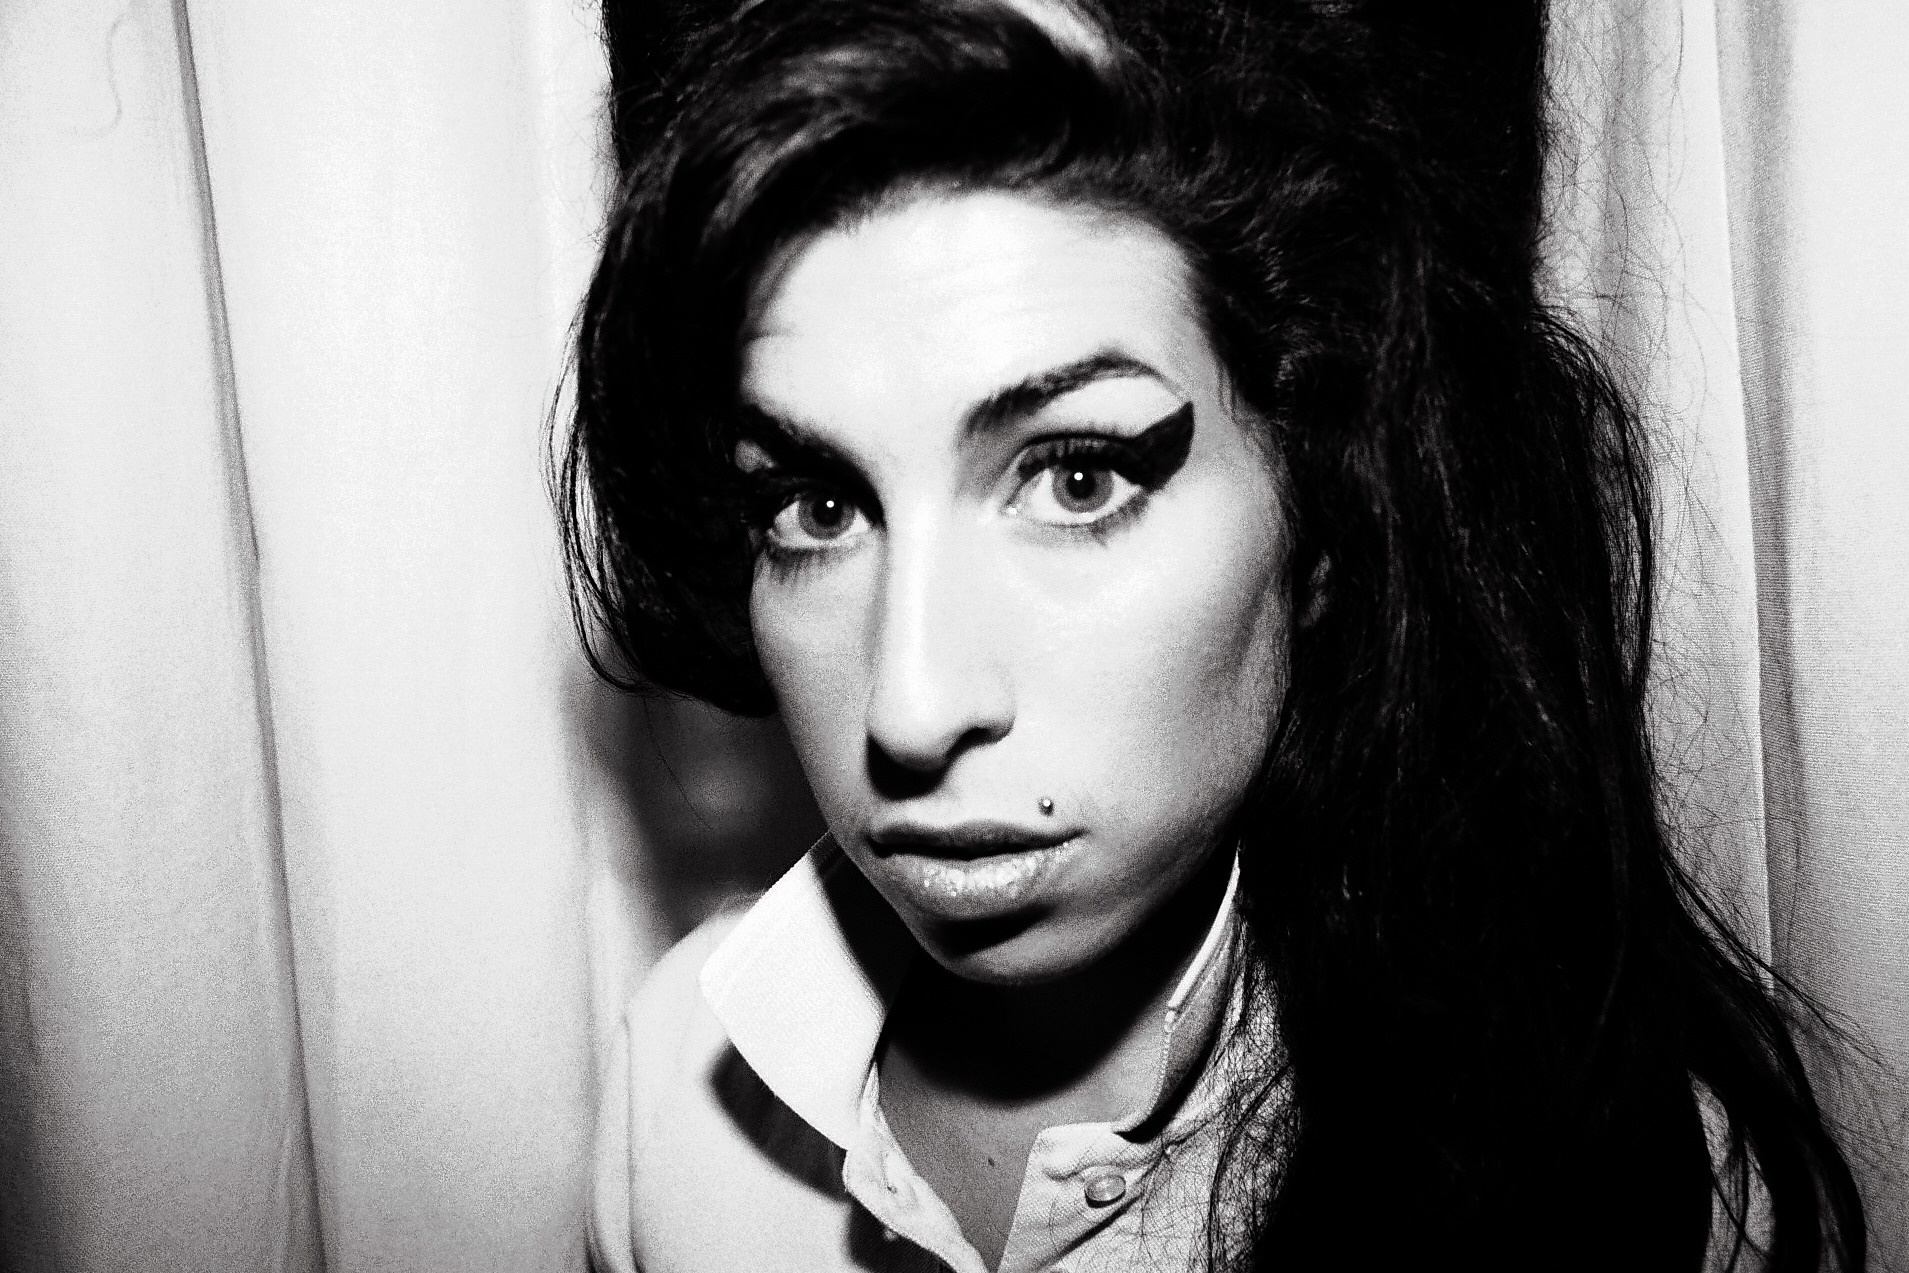 D 77032-15 Amy Winehouse. Obligatory Credit - CAMERA PRESS / Mari Sarai. SPECIAL PRICE APPLIES - CONSULT CAMERA PRESS OR ITS LOCAL AGENT. British singer/songwriter Amy Winehouse. *** Local Caption *** 00/00/2006. Singer Amy Winehouse